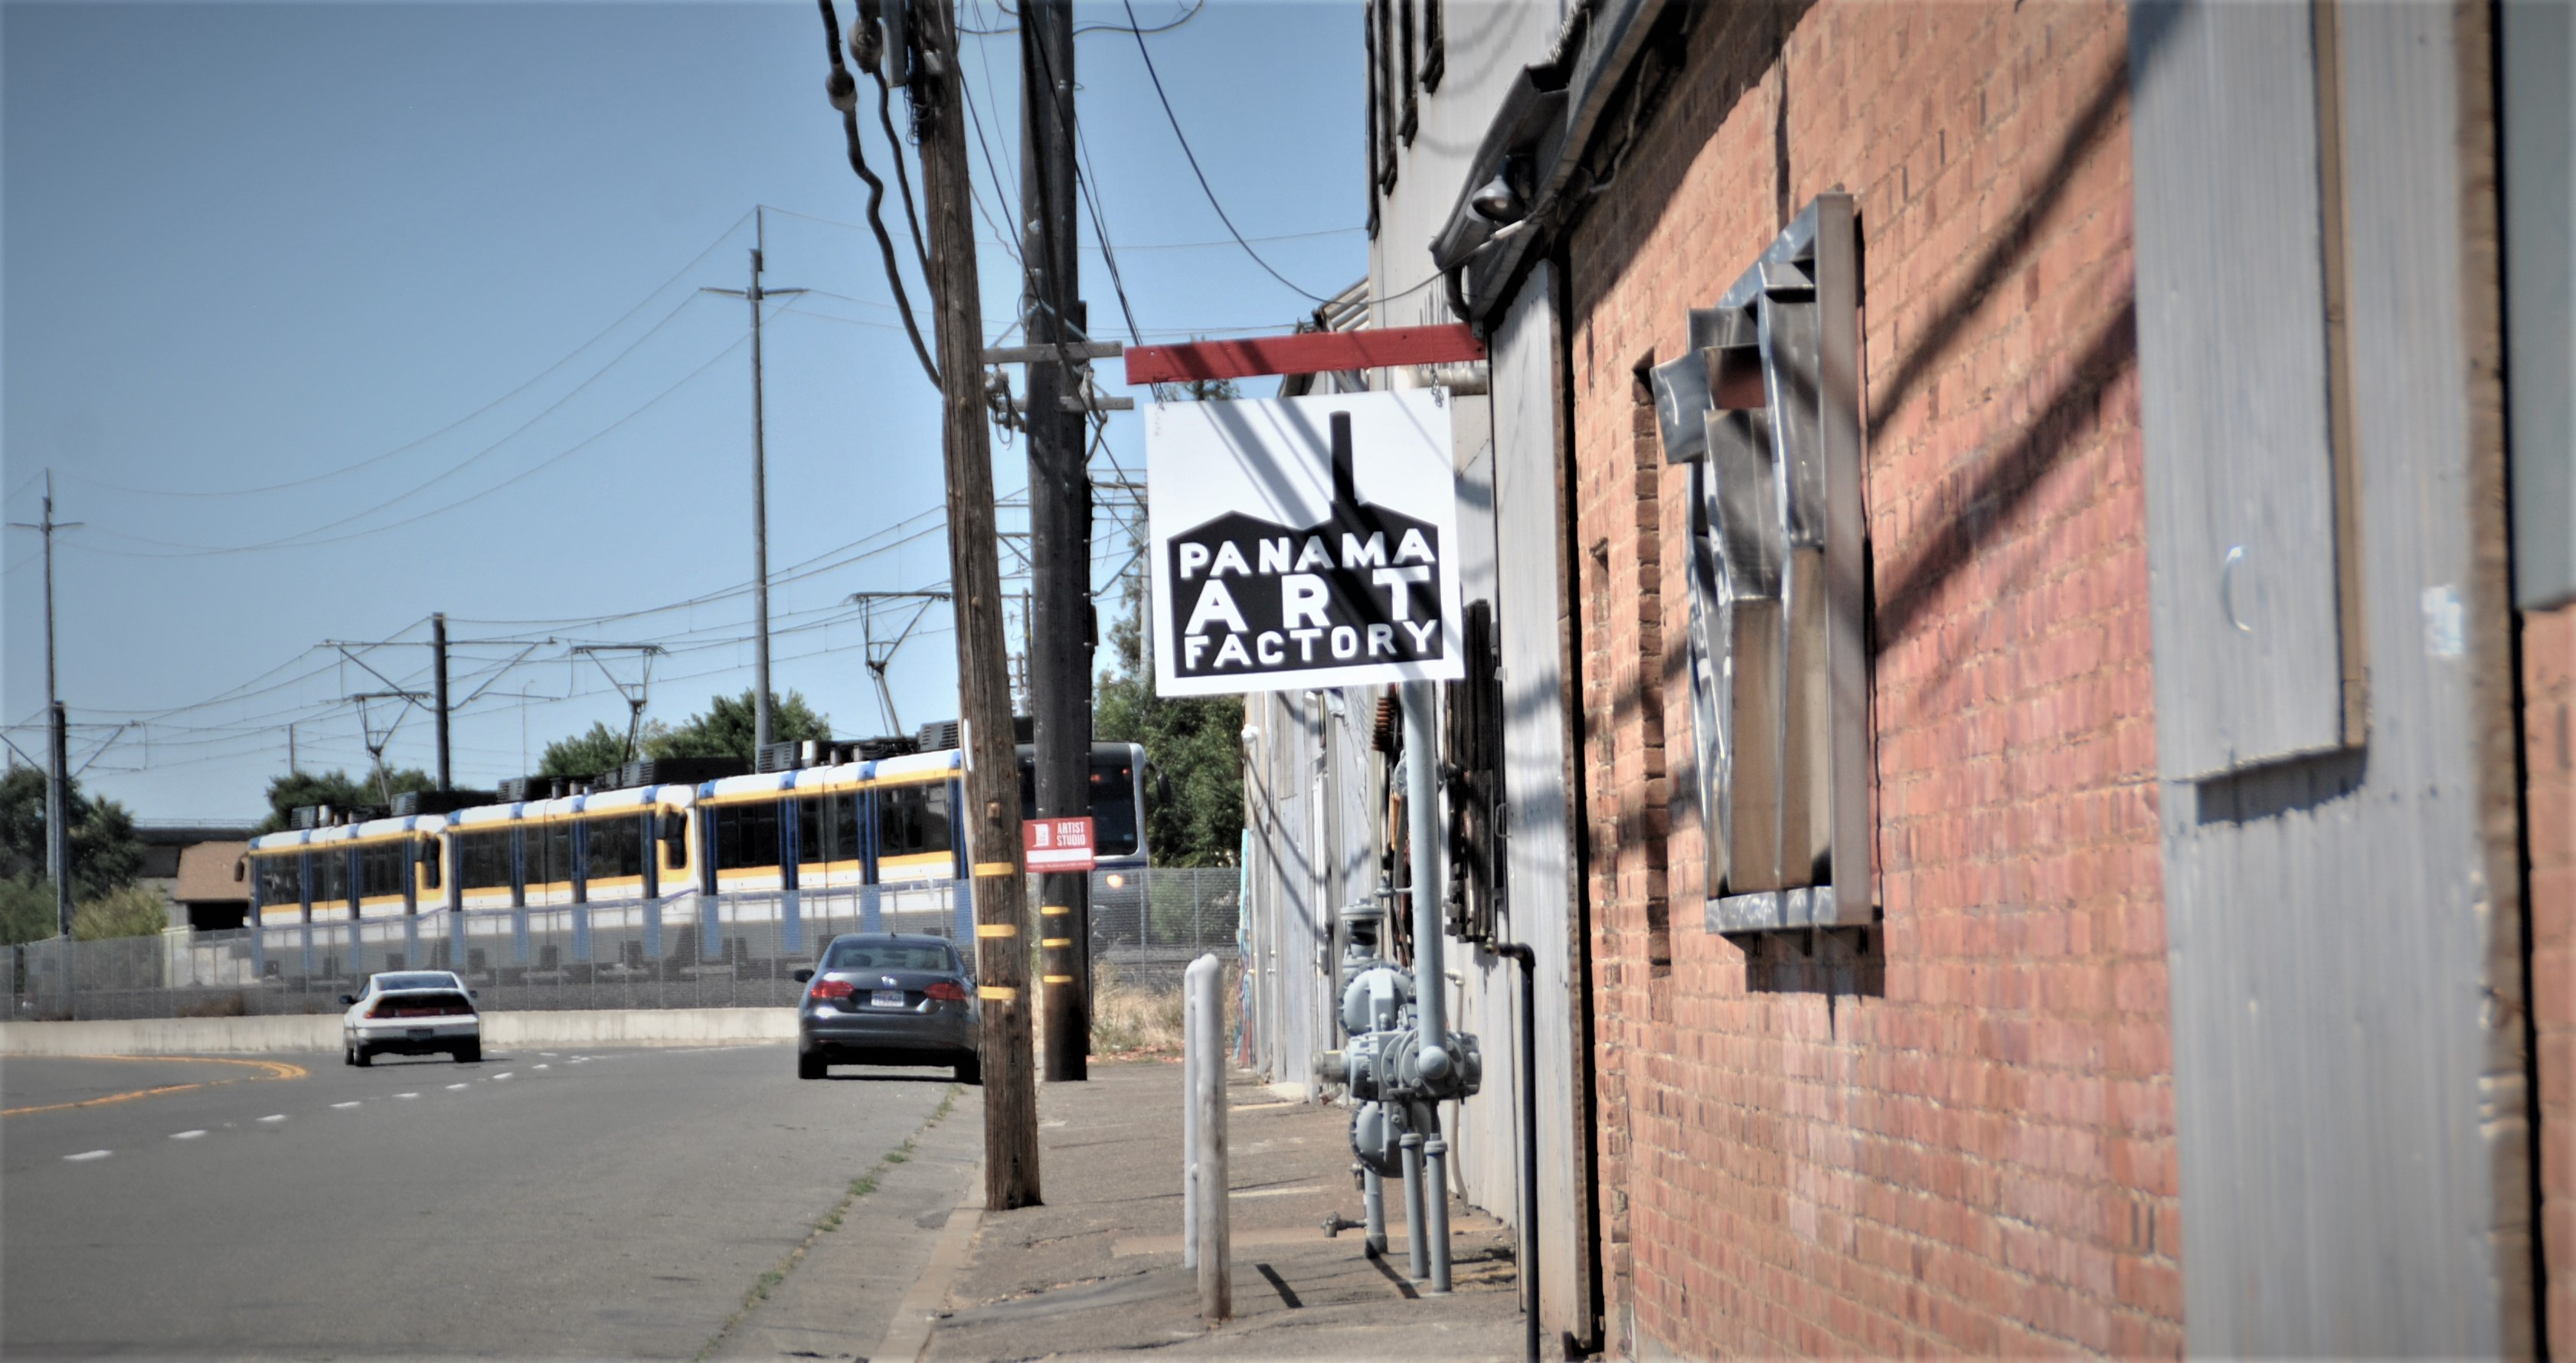 Panama Art Factory tenants asked to vacate studios, retail yard to stay open for business